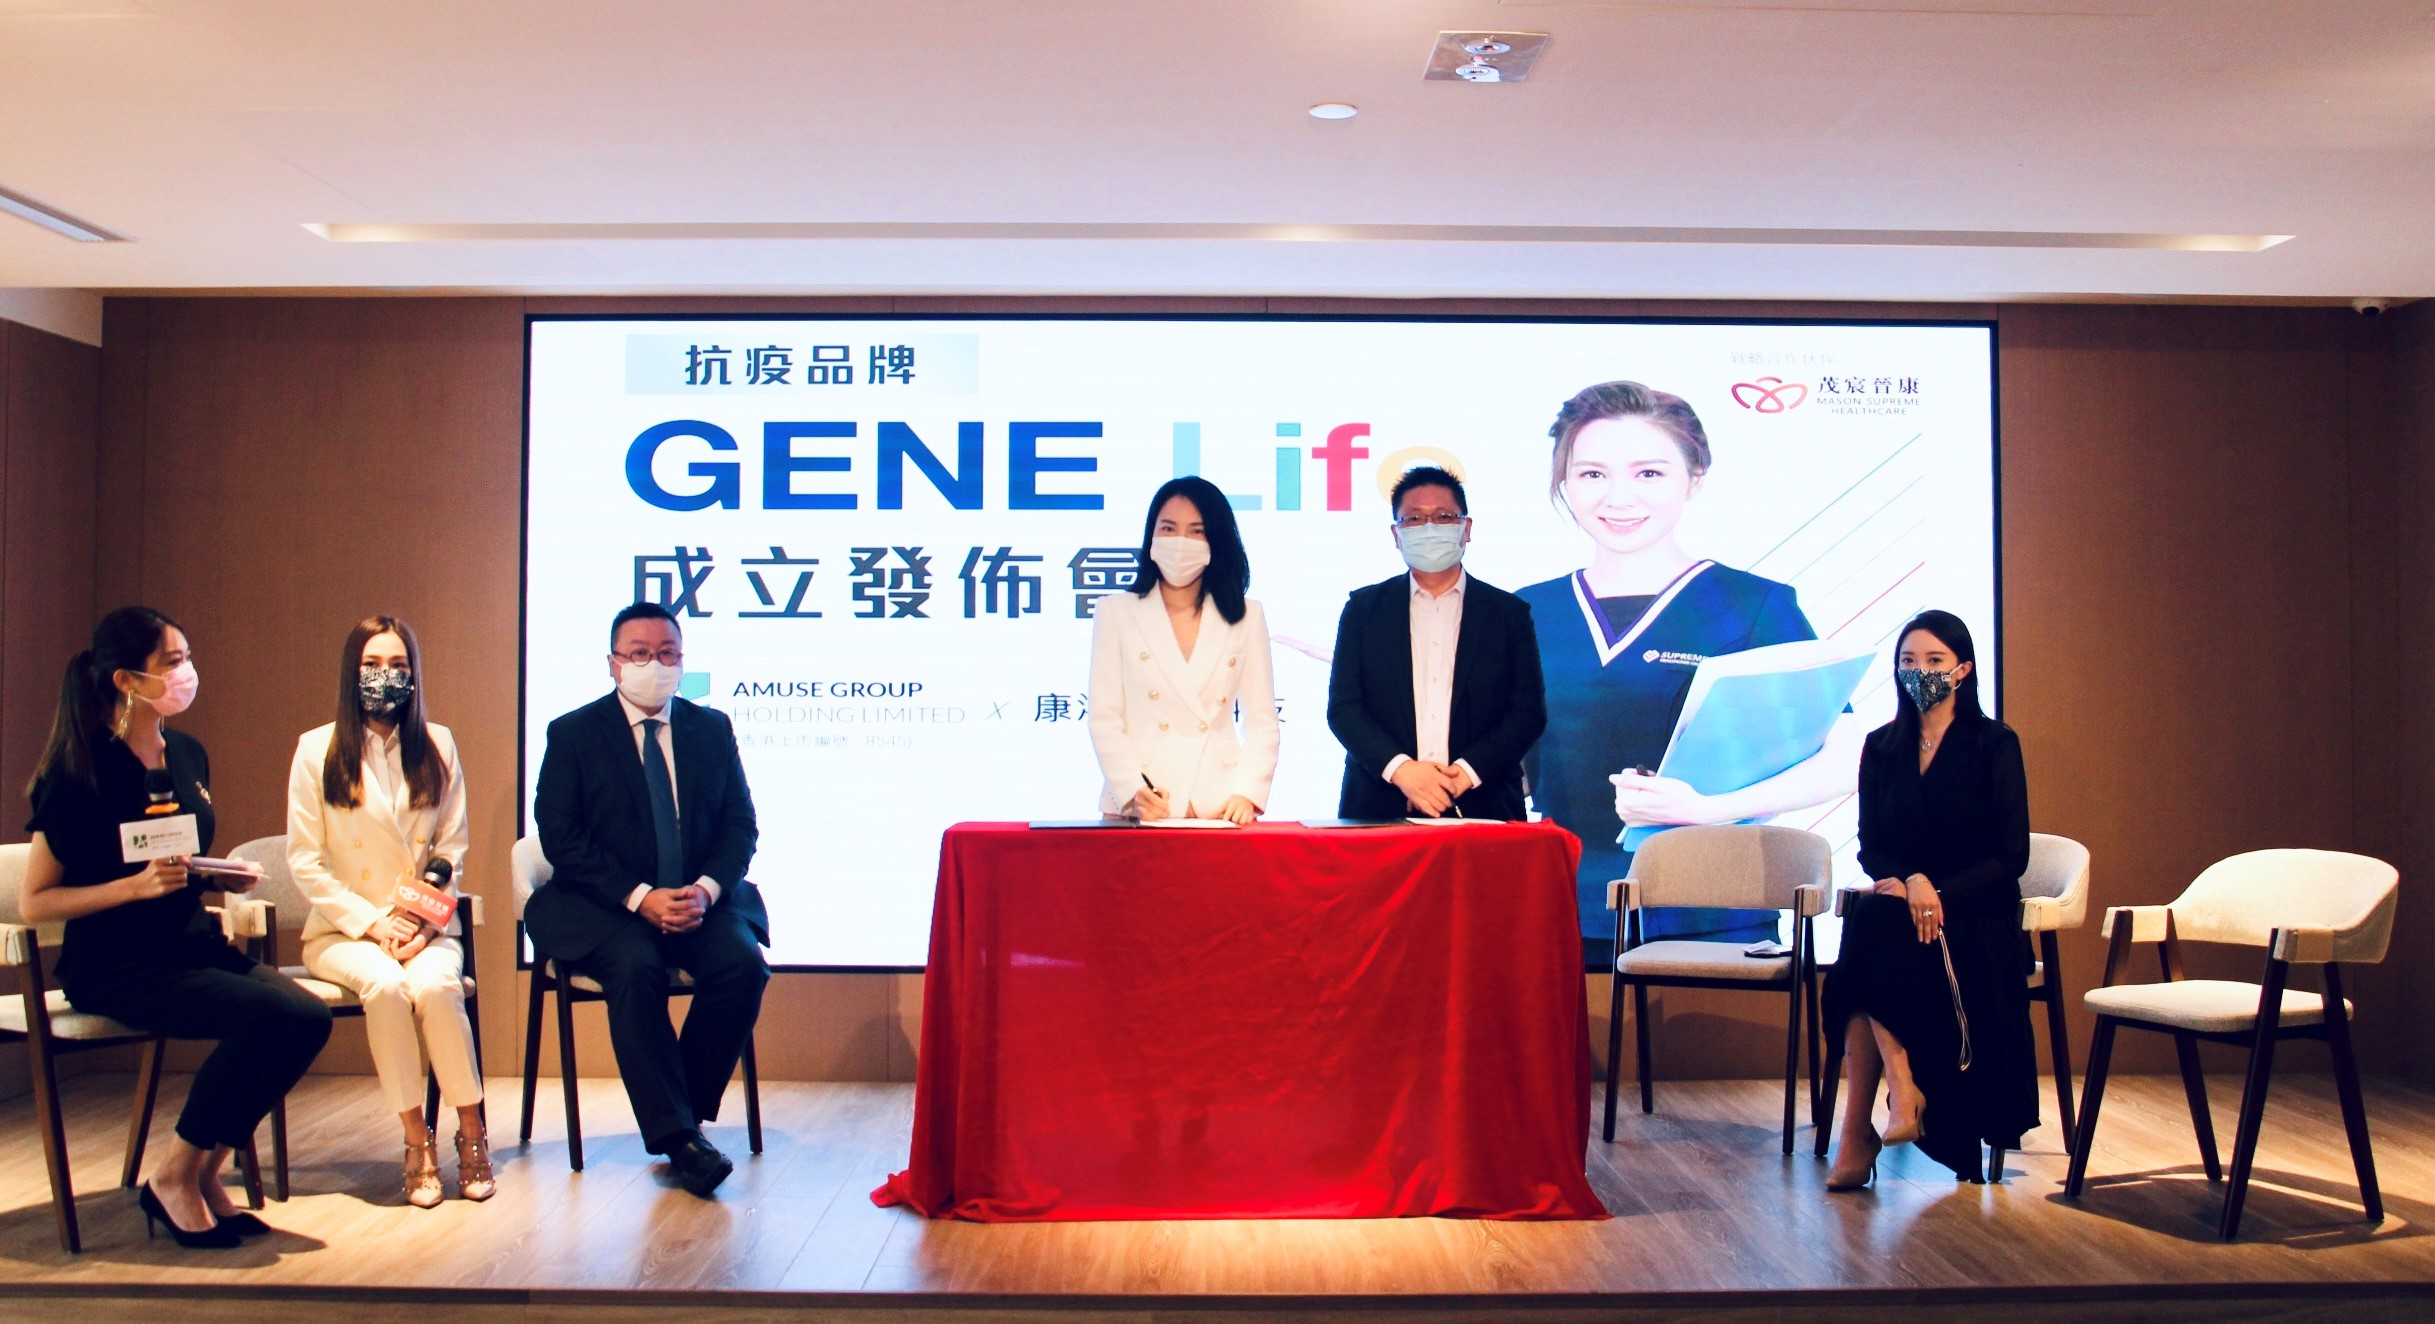 GENE Life Was Officially Established  With The Dedication To Provide Anti-pandemic Supplies  Including COVID-19 Test Kits